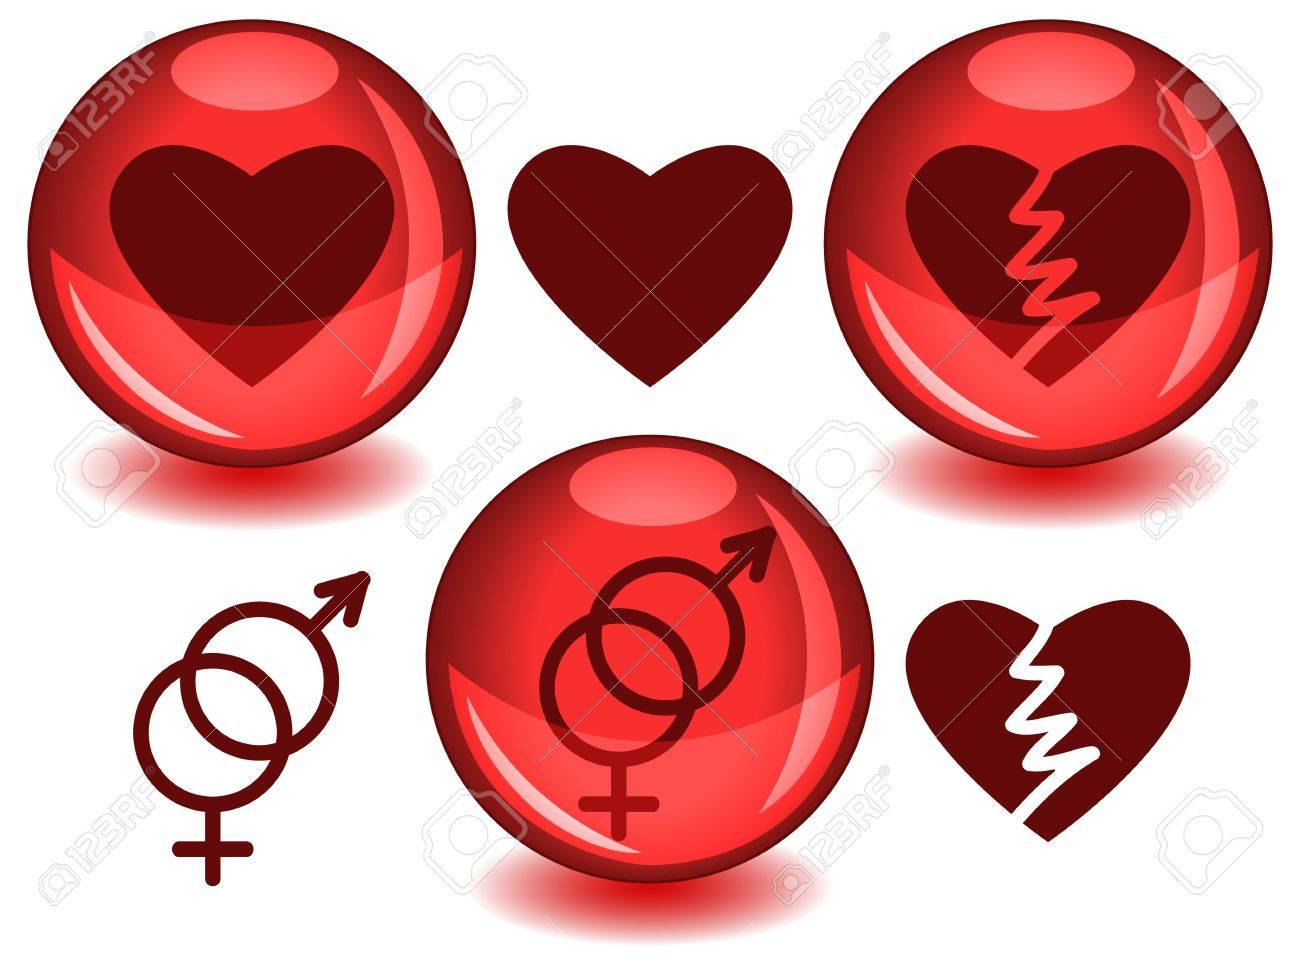 Love Related Symbols Heart Broken Heart And Entwined Male Female